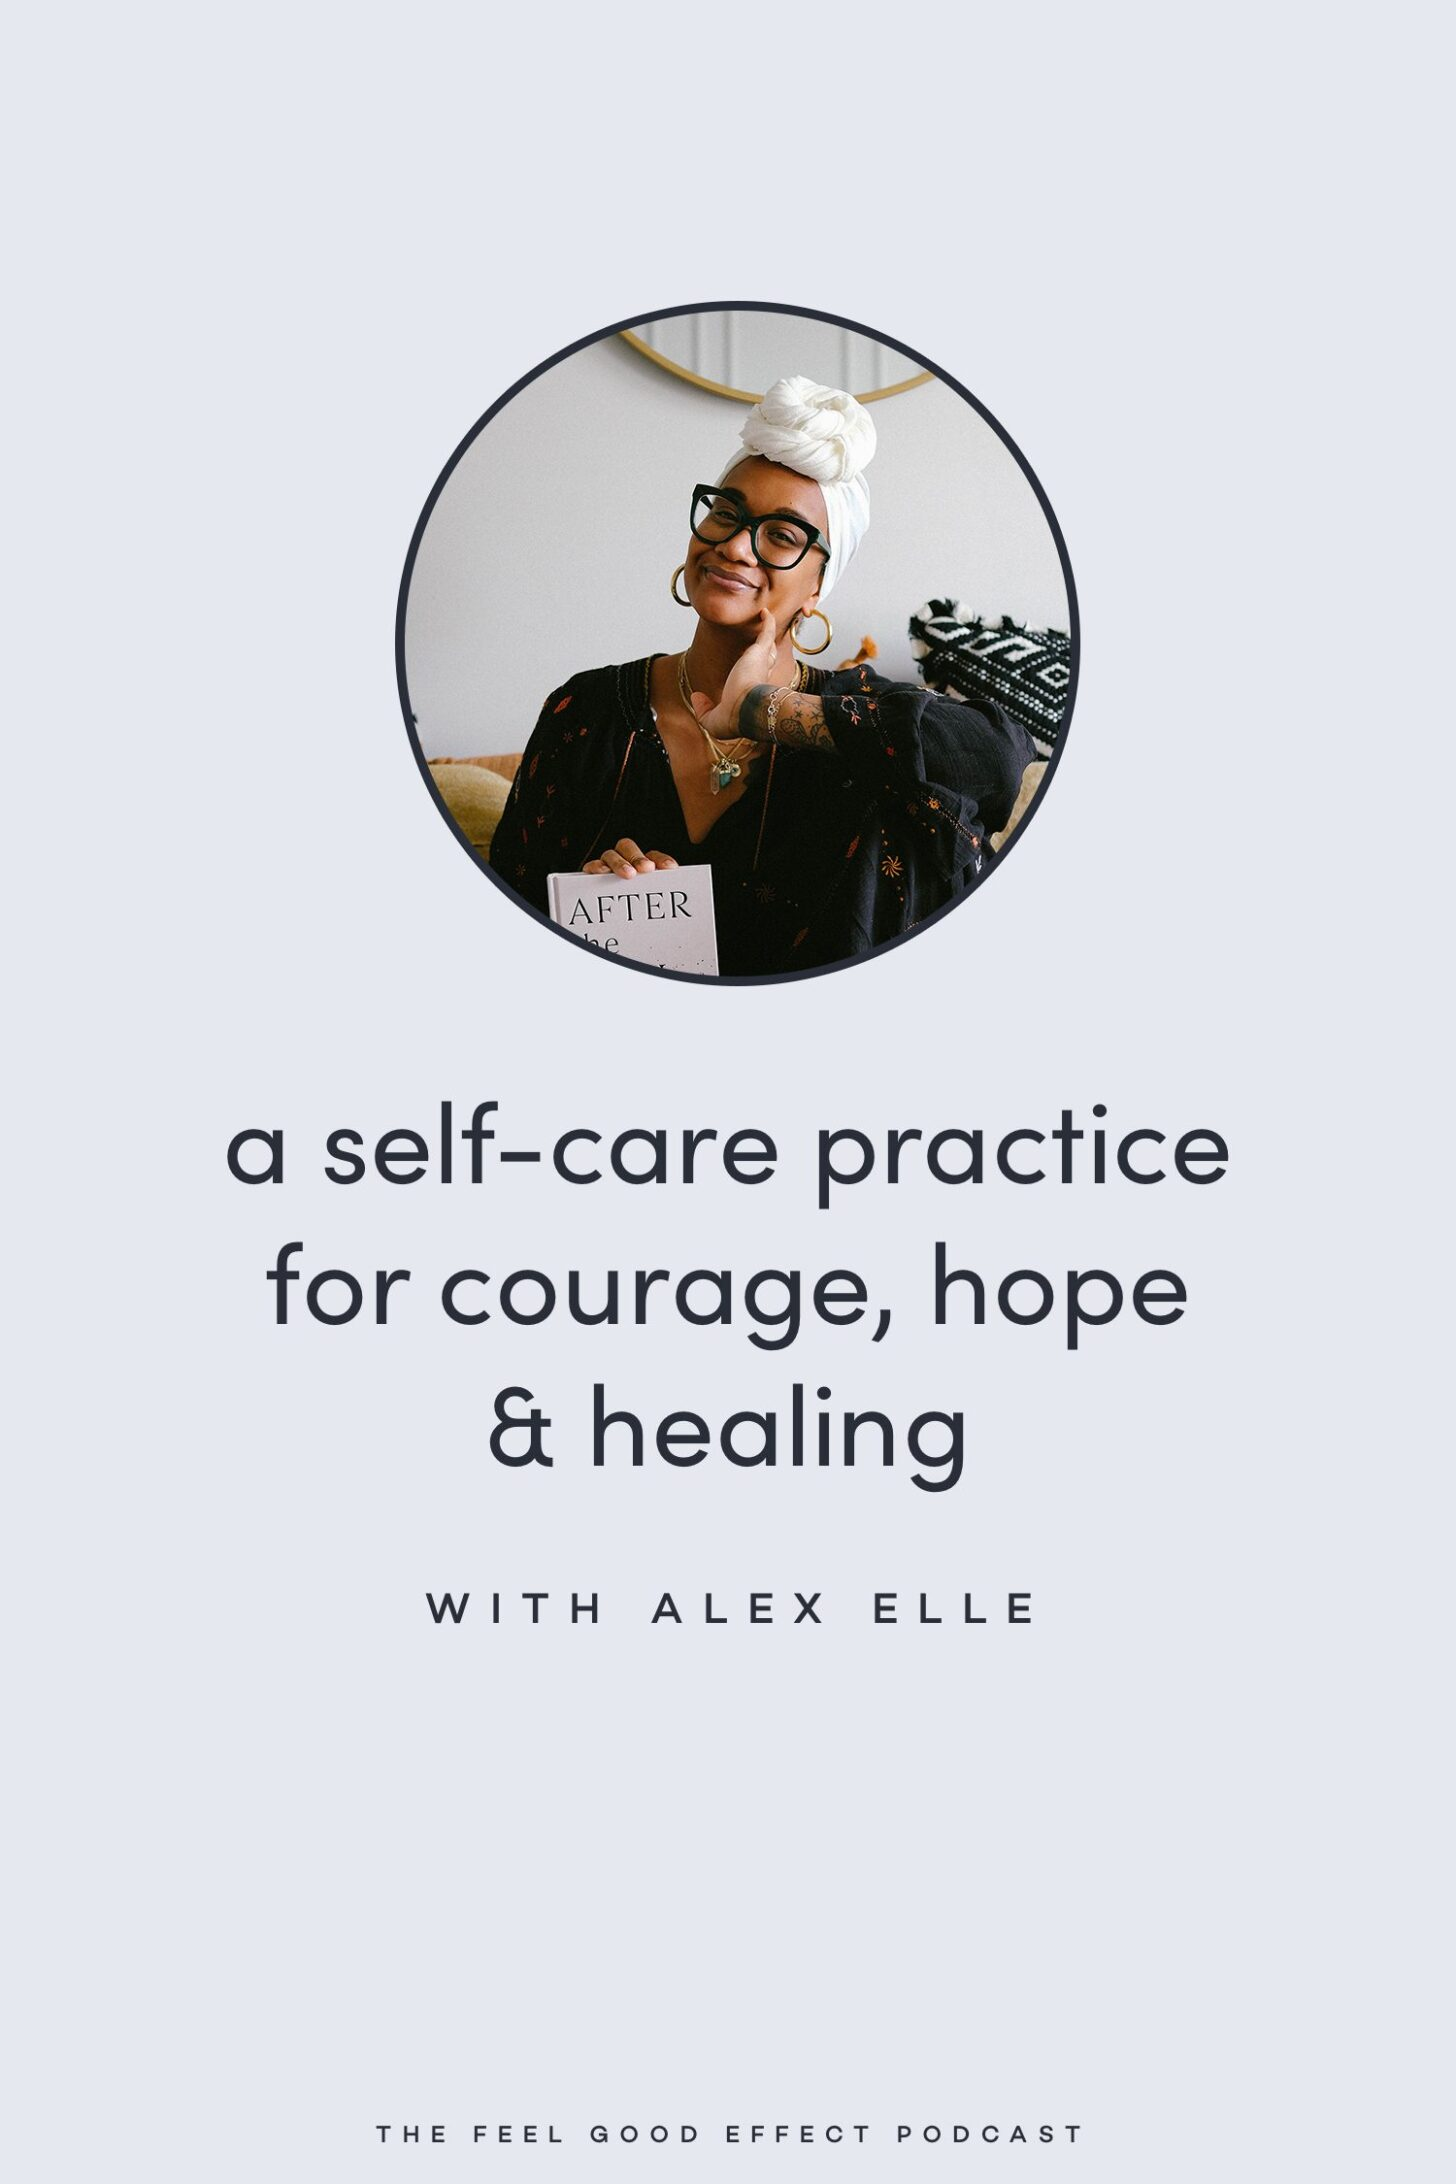 A self-care practice for courage, hope, and healing with Alex Elle on the Feel Good Effect Podcast #realfoodwholelife #feelgoodeffectpodcast #selfcarepractice #selfcaretips #nourish #selfcompassion #selflove #selfdiscovery #writingtips #writingideas